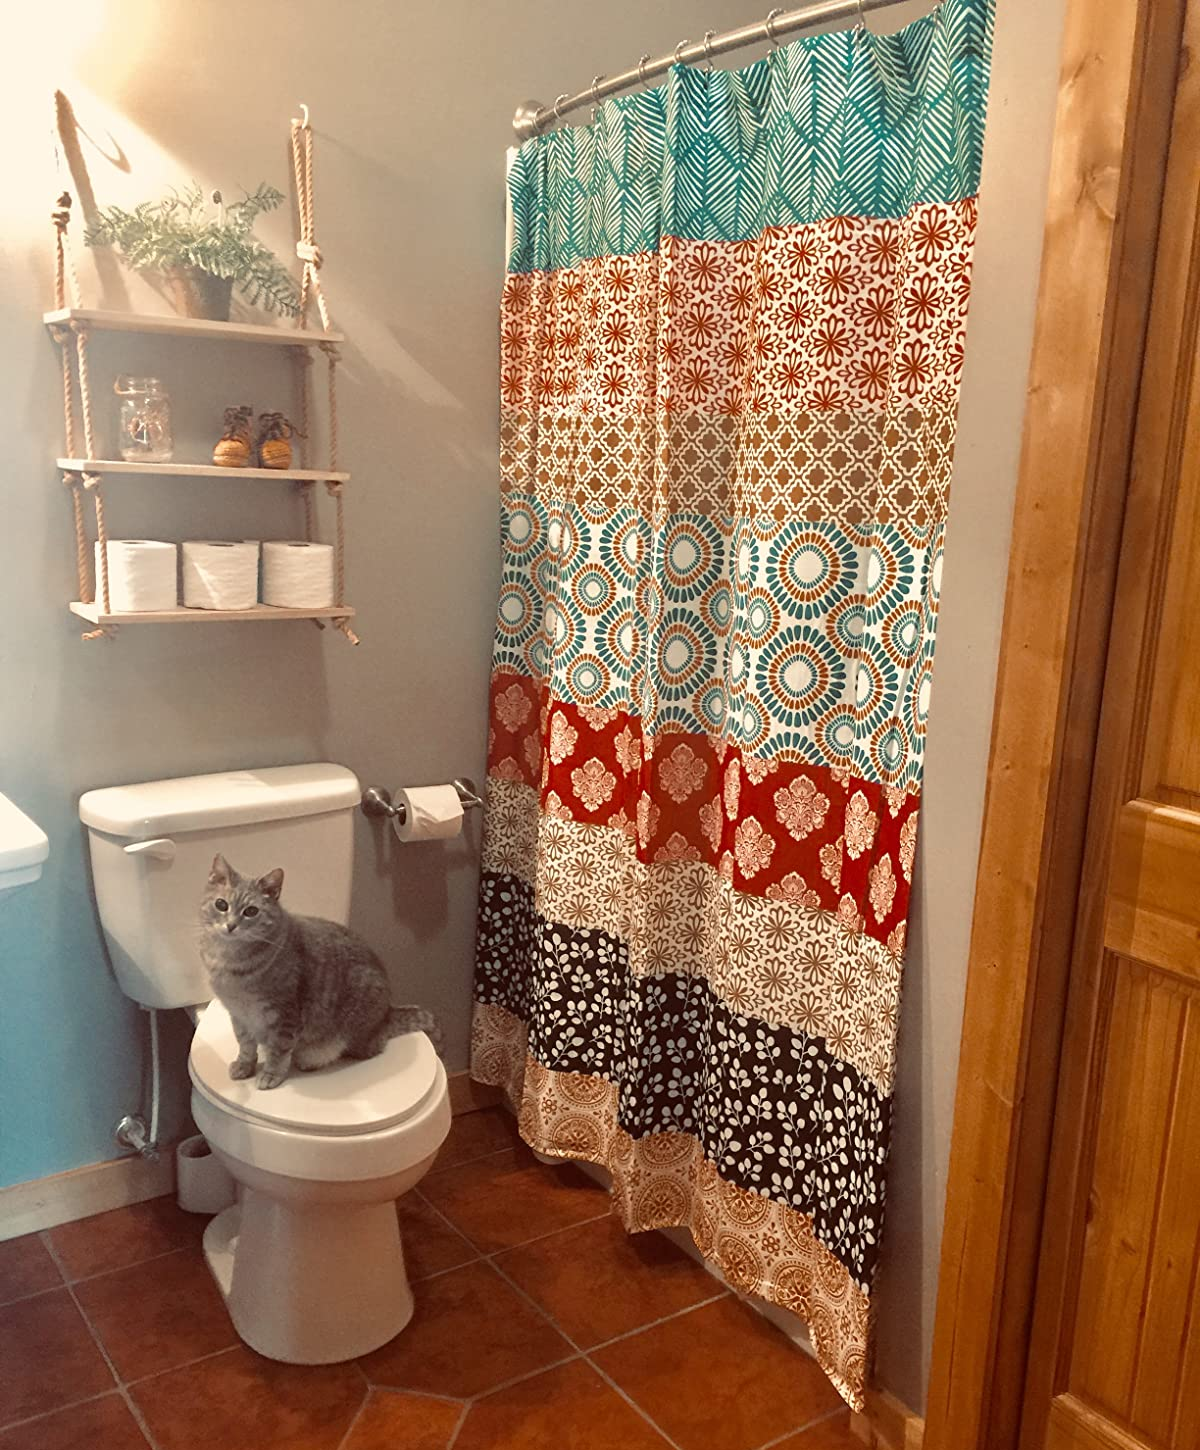 a reviewer photo of a bathroom with the shower curtain hung up and a cat sitting on a toilet